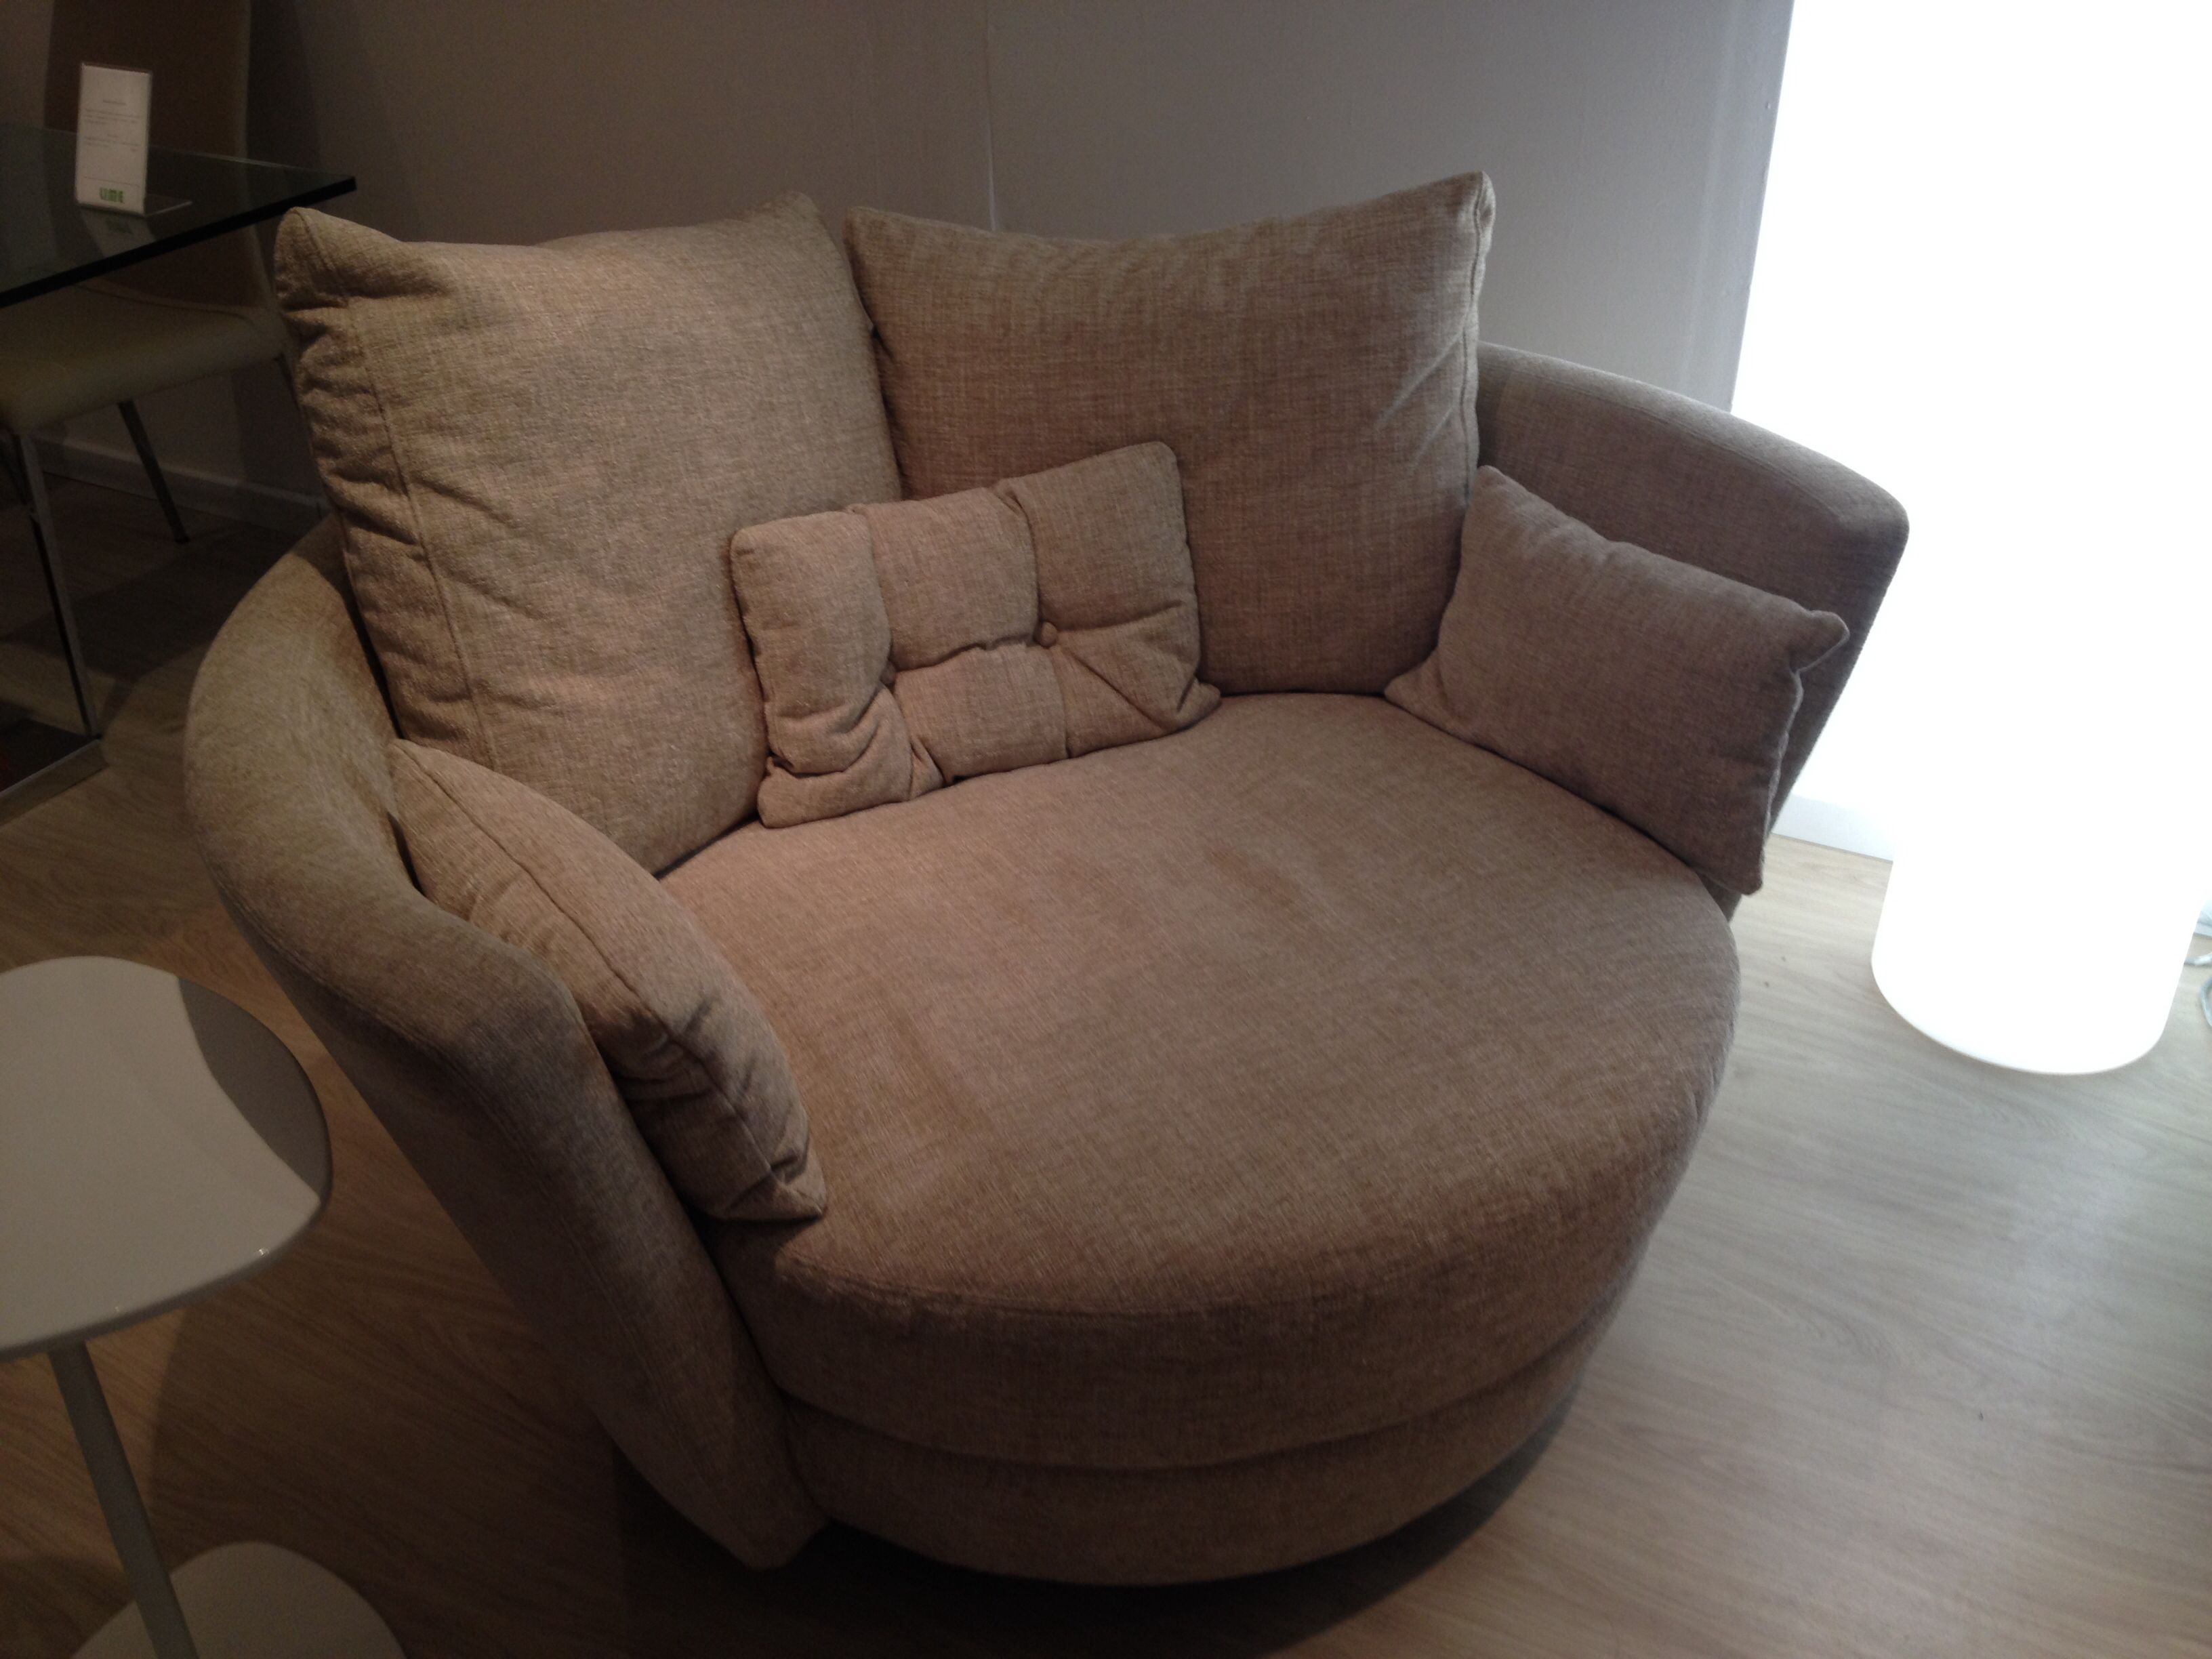 Sitting room chair